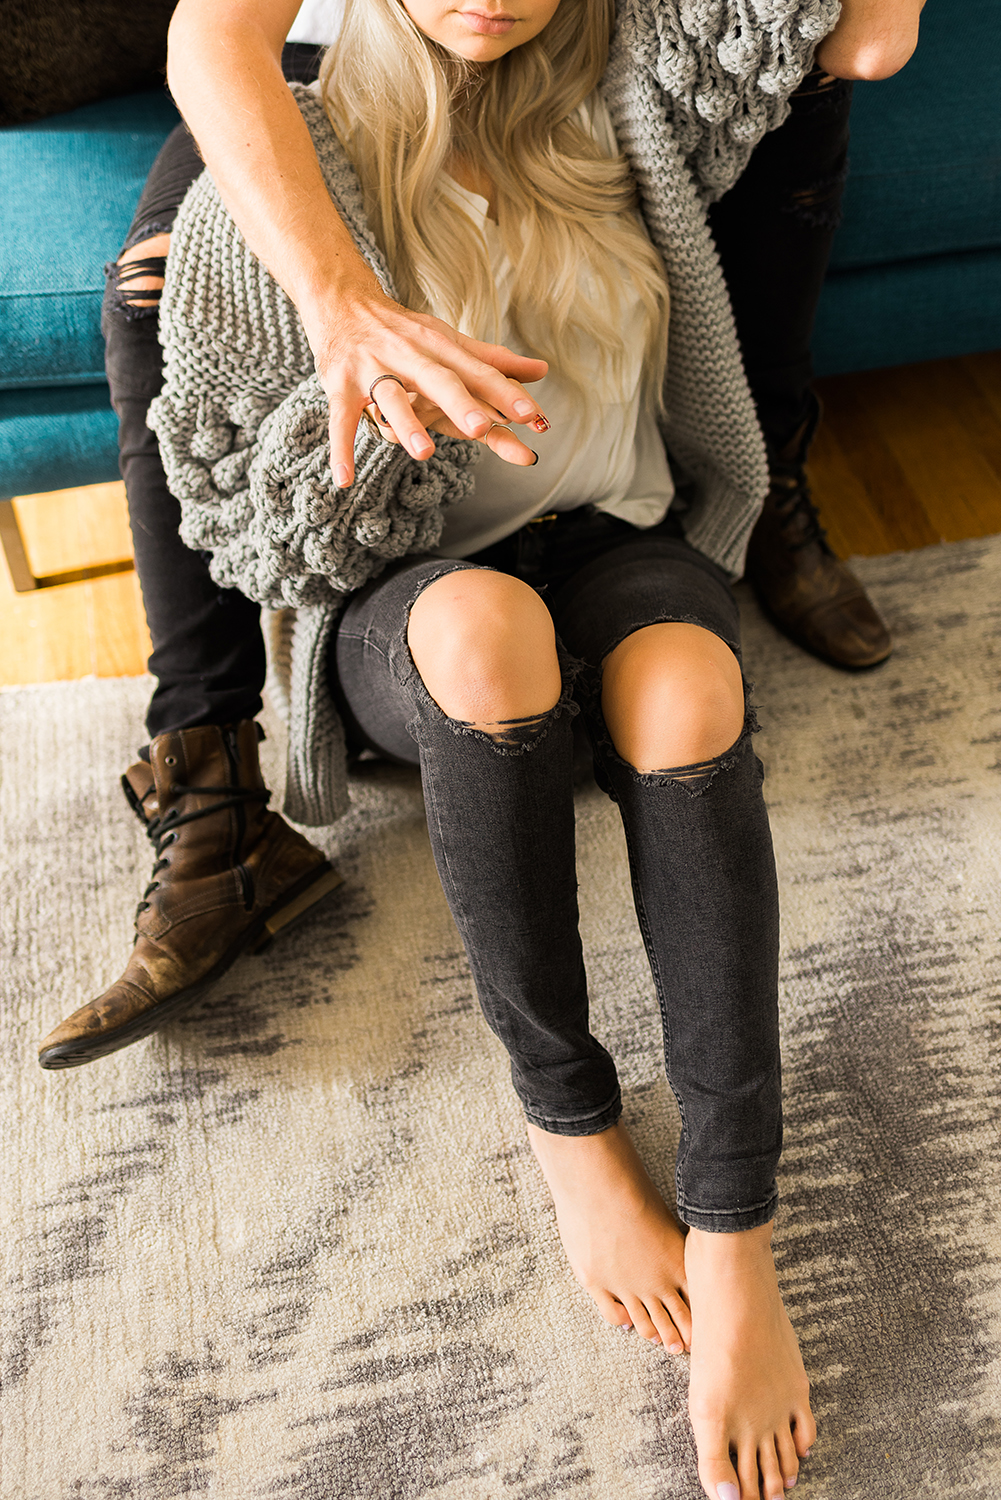 in-home-couples-session-colorado-photographer-25.jpg